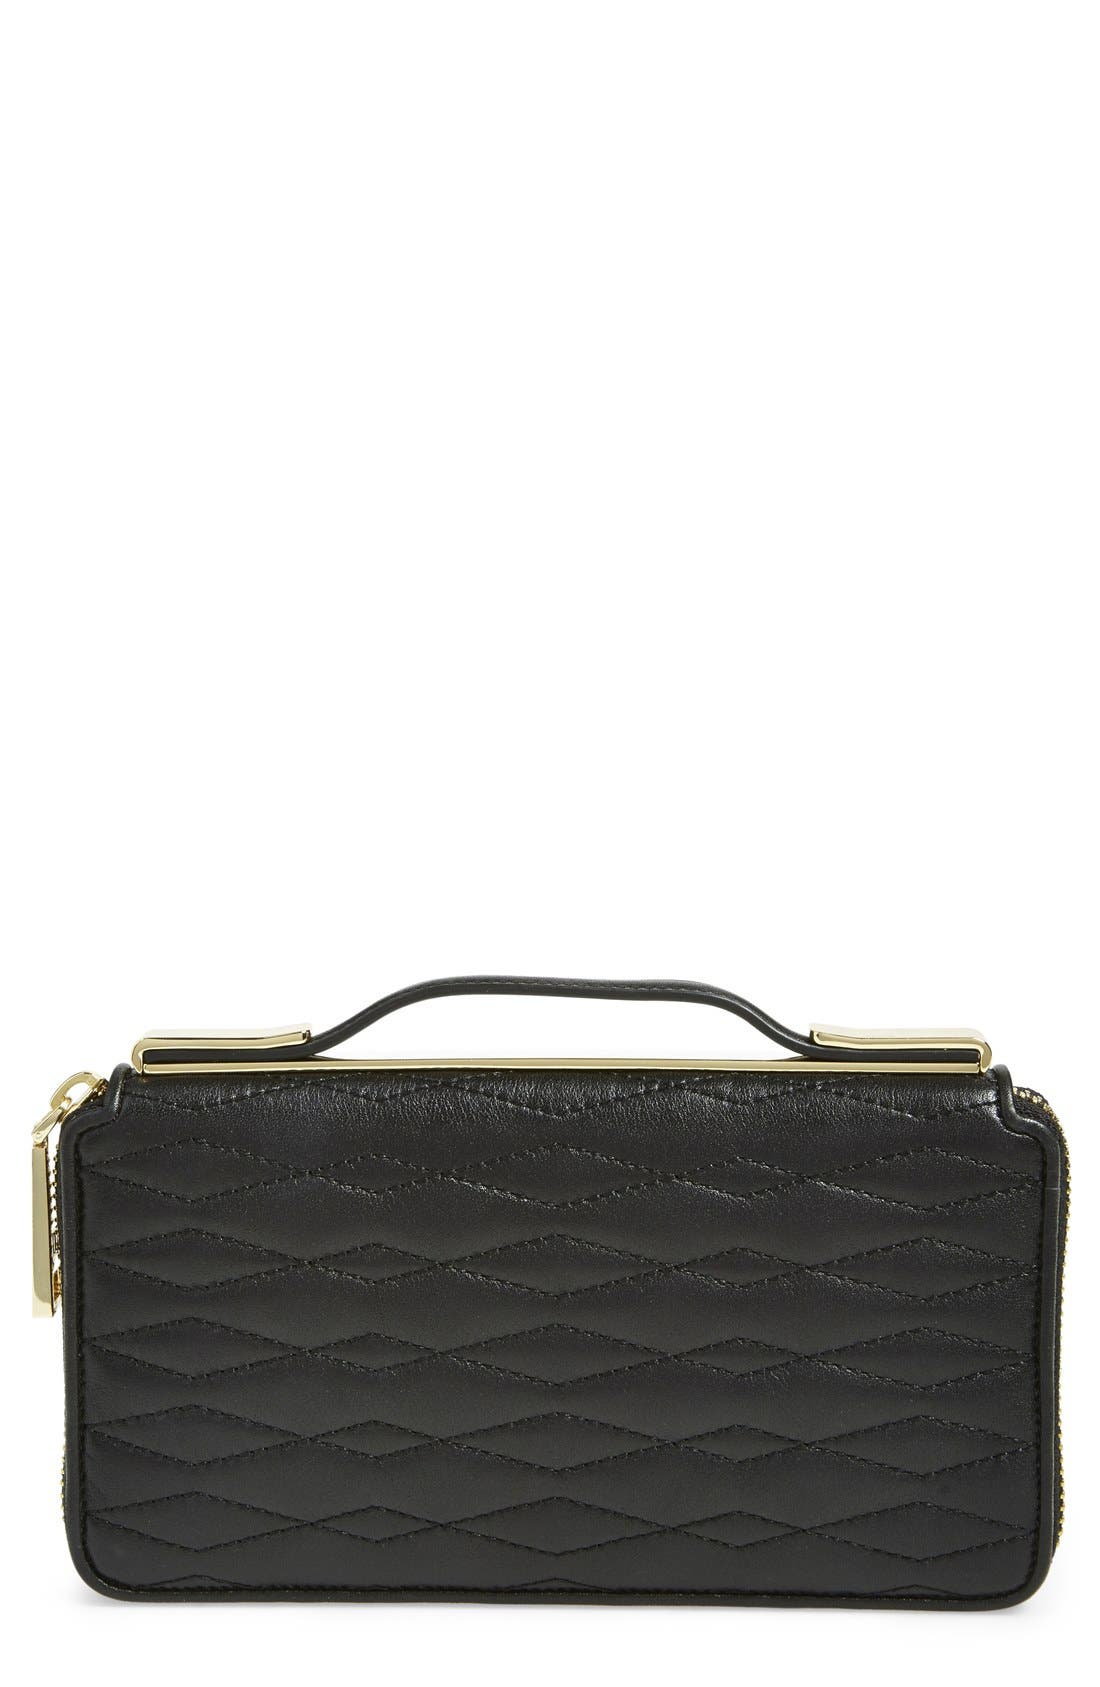 Main Image - Ivanka Trump 'Bedminster' Leather Clutch